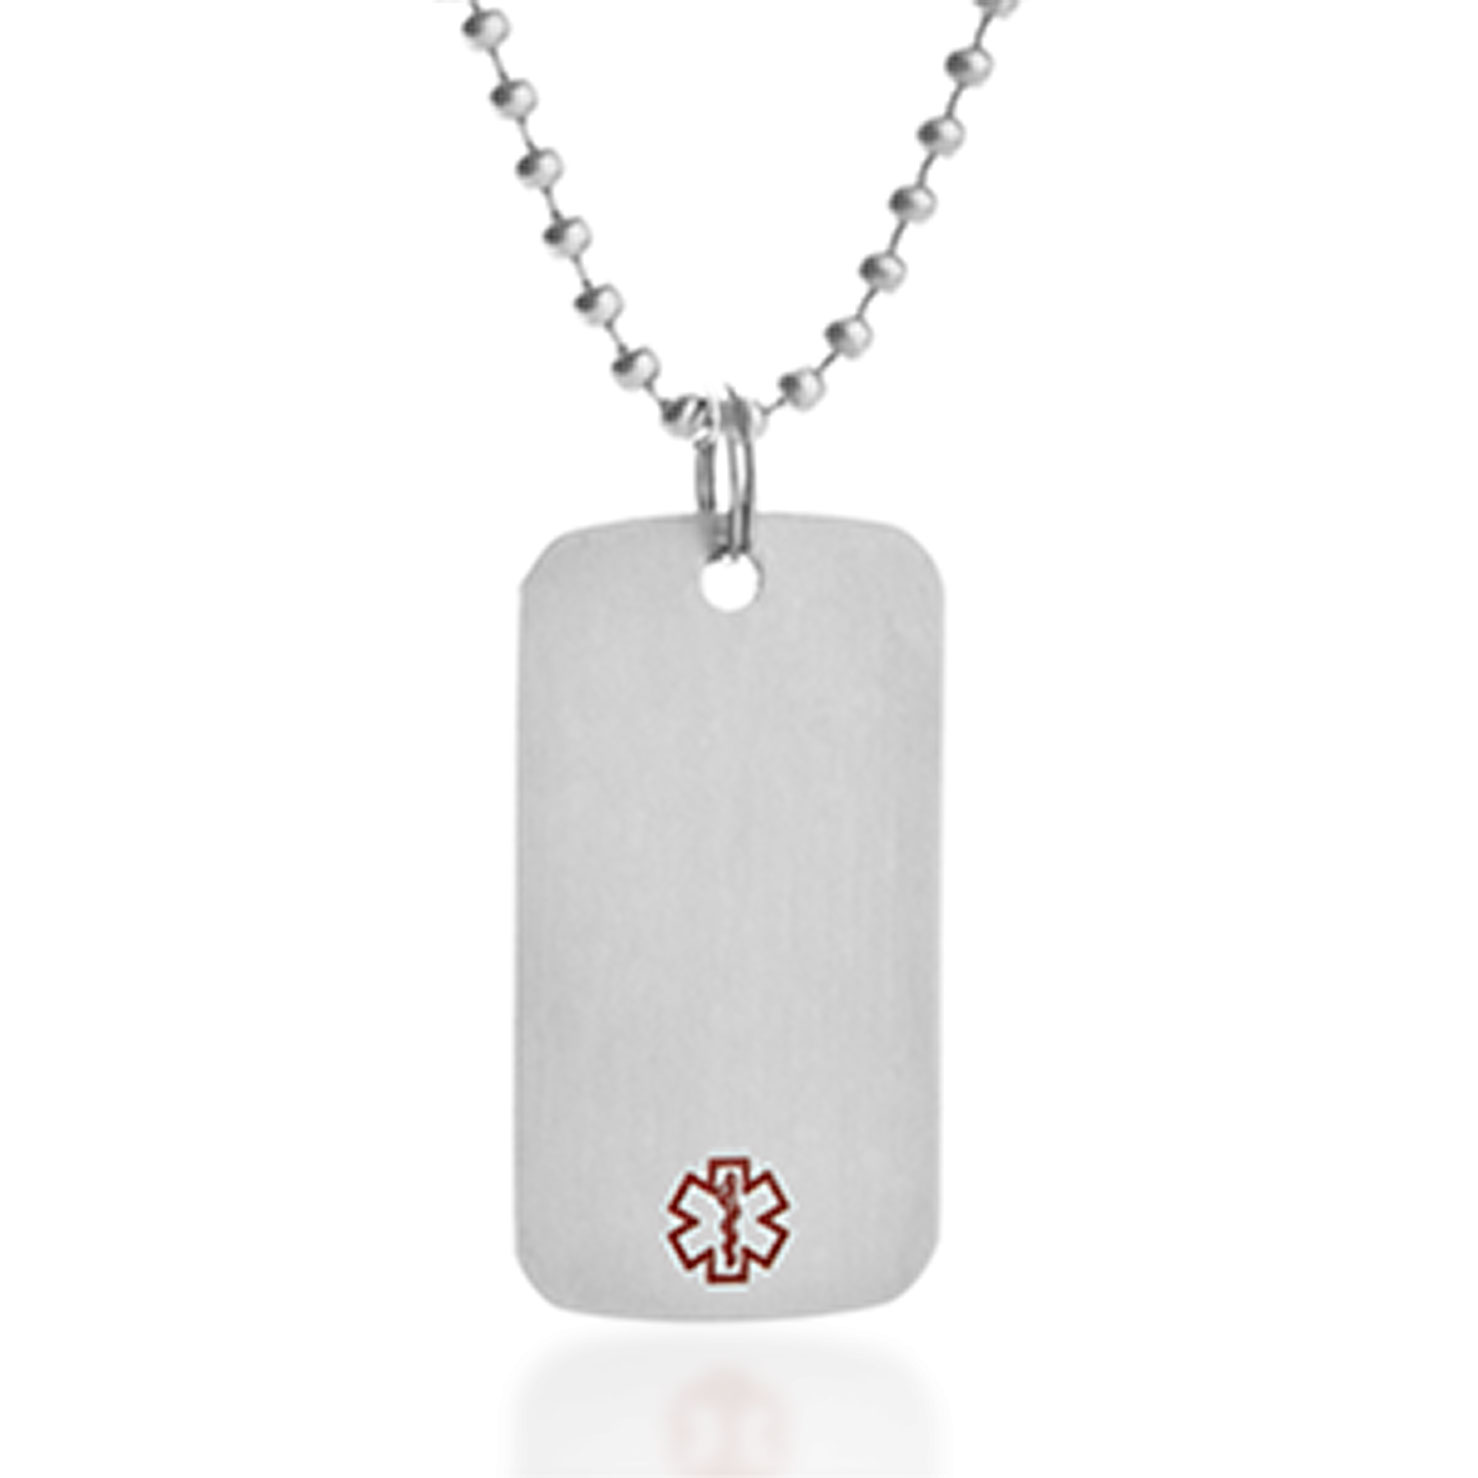 Medium Brushed Steel Medical Dog Tag